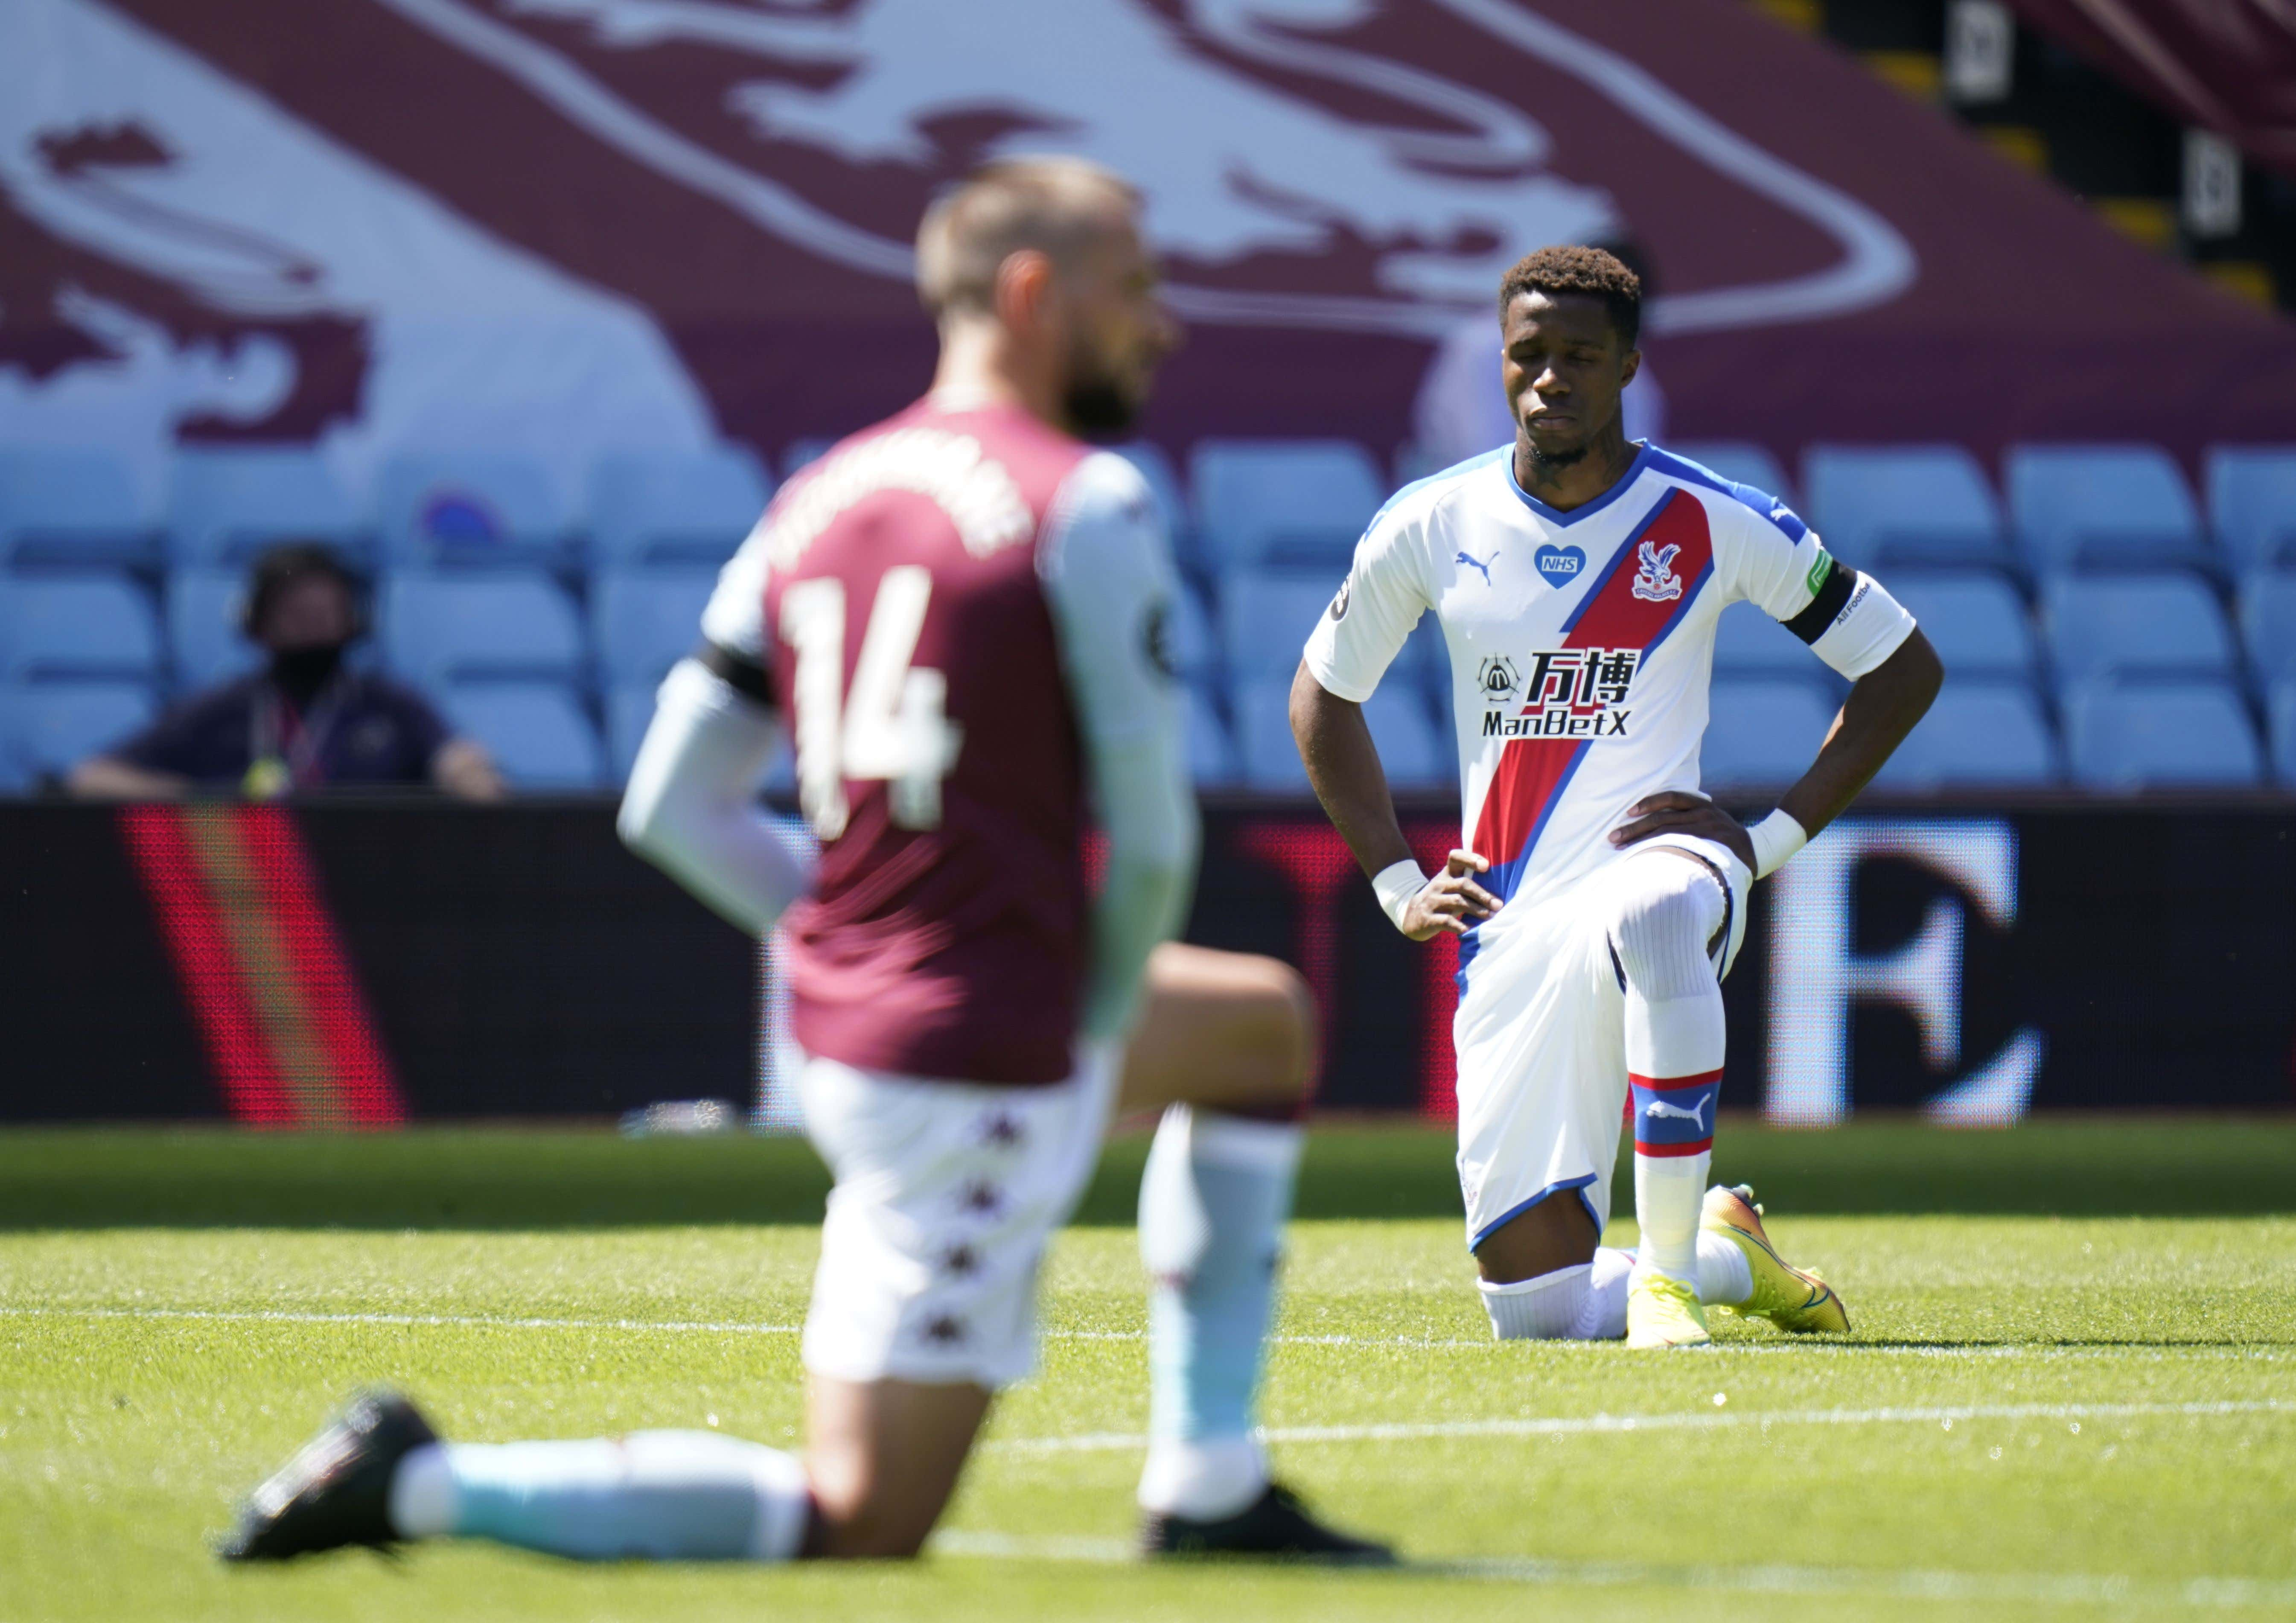 Wilfried Zaha (R) of Crystal Palace takes a knee in support of the Black Lives Matter campaign ahead of the English Premier League soccer match between Aston Villa and Crystal Palace in Birmingham, Britain, 12 July 2020.